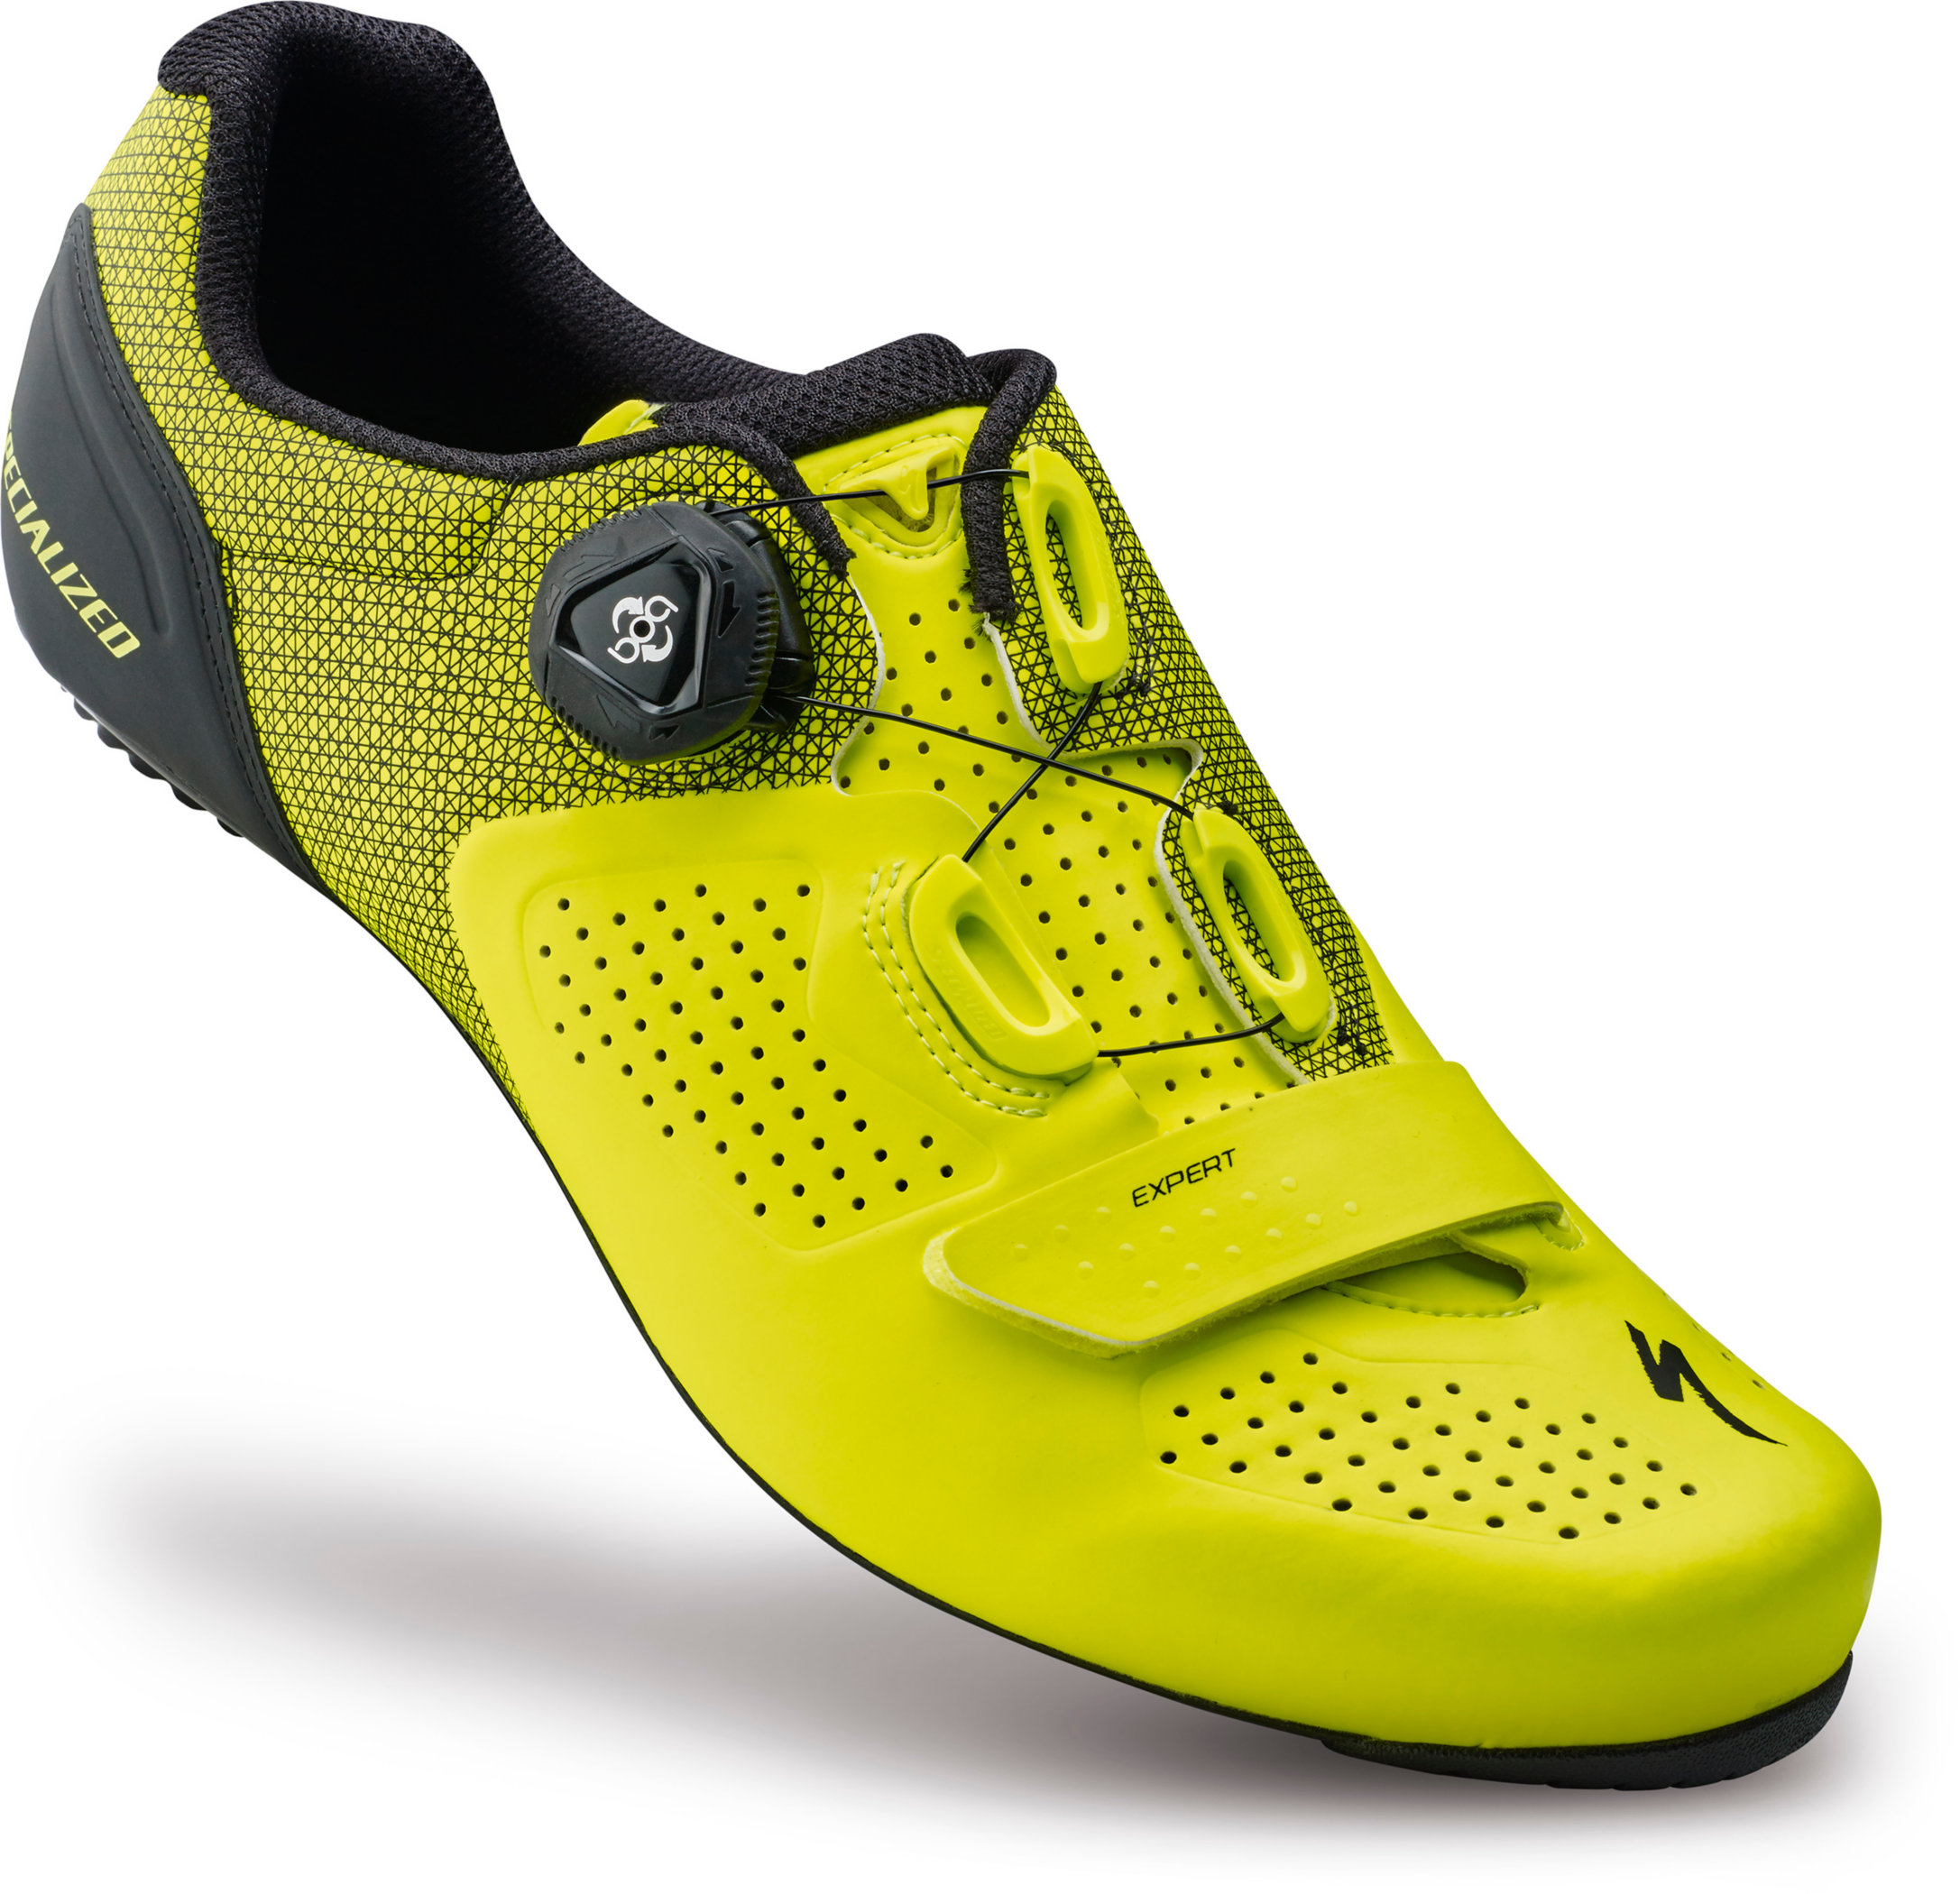 SPECIALIZED EXPERT RD SHOE NEON YEL 40/7.5 - Bikedreams & Dustbikes